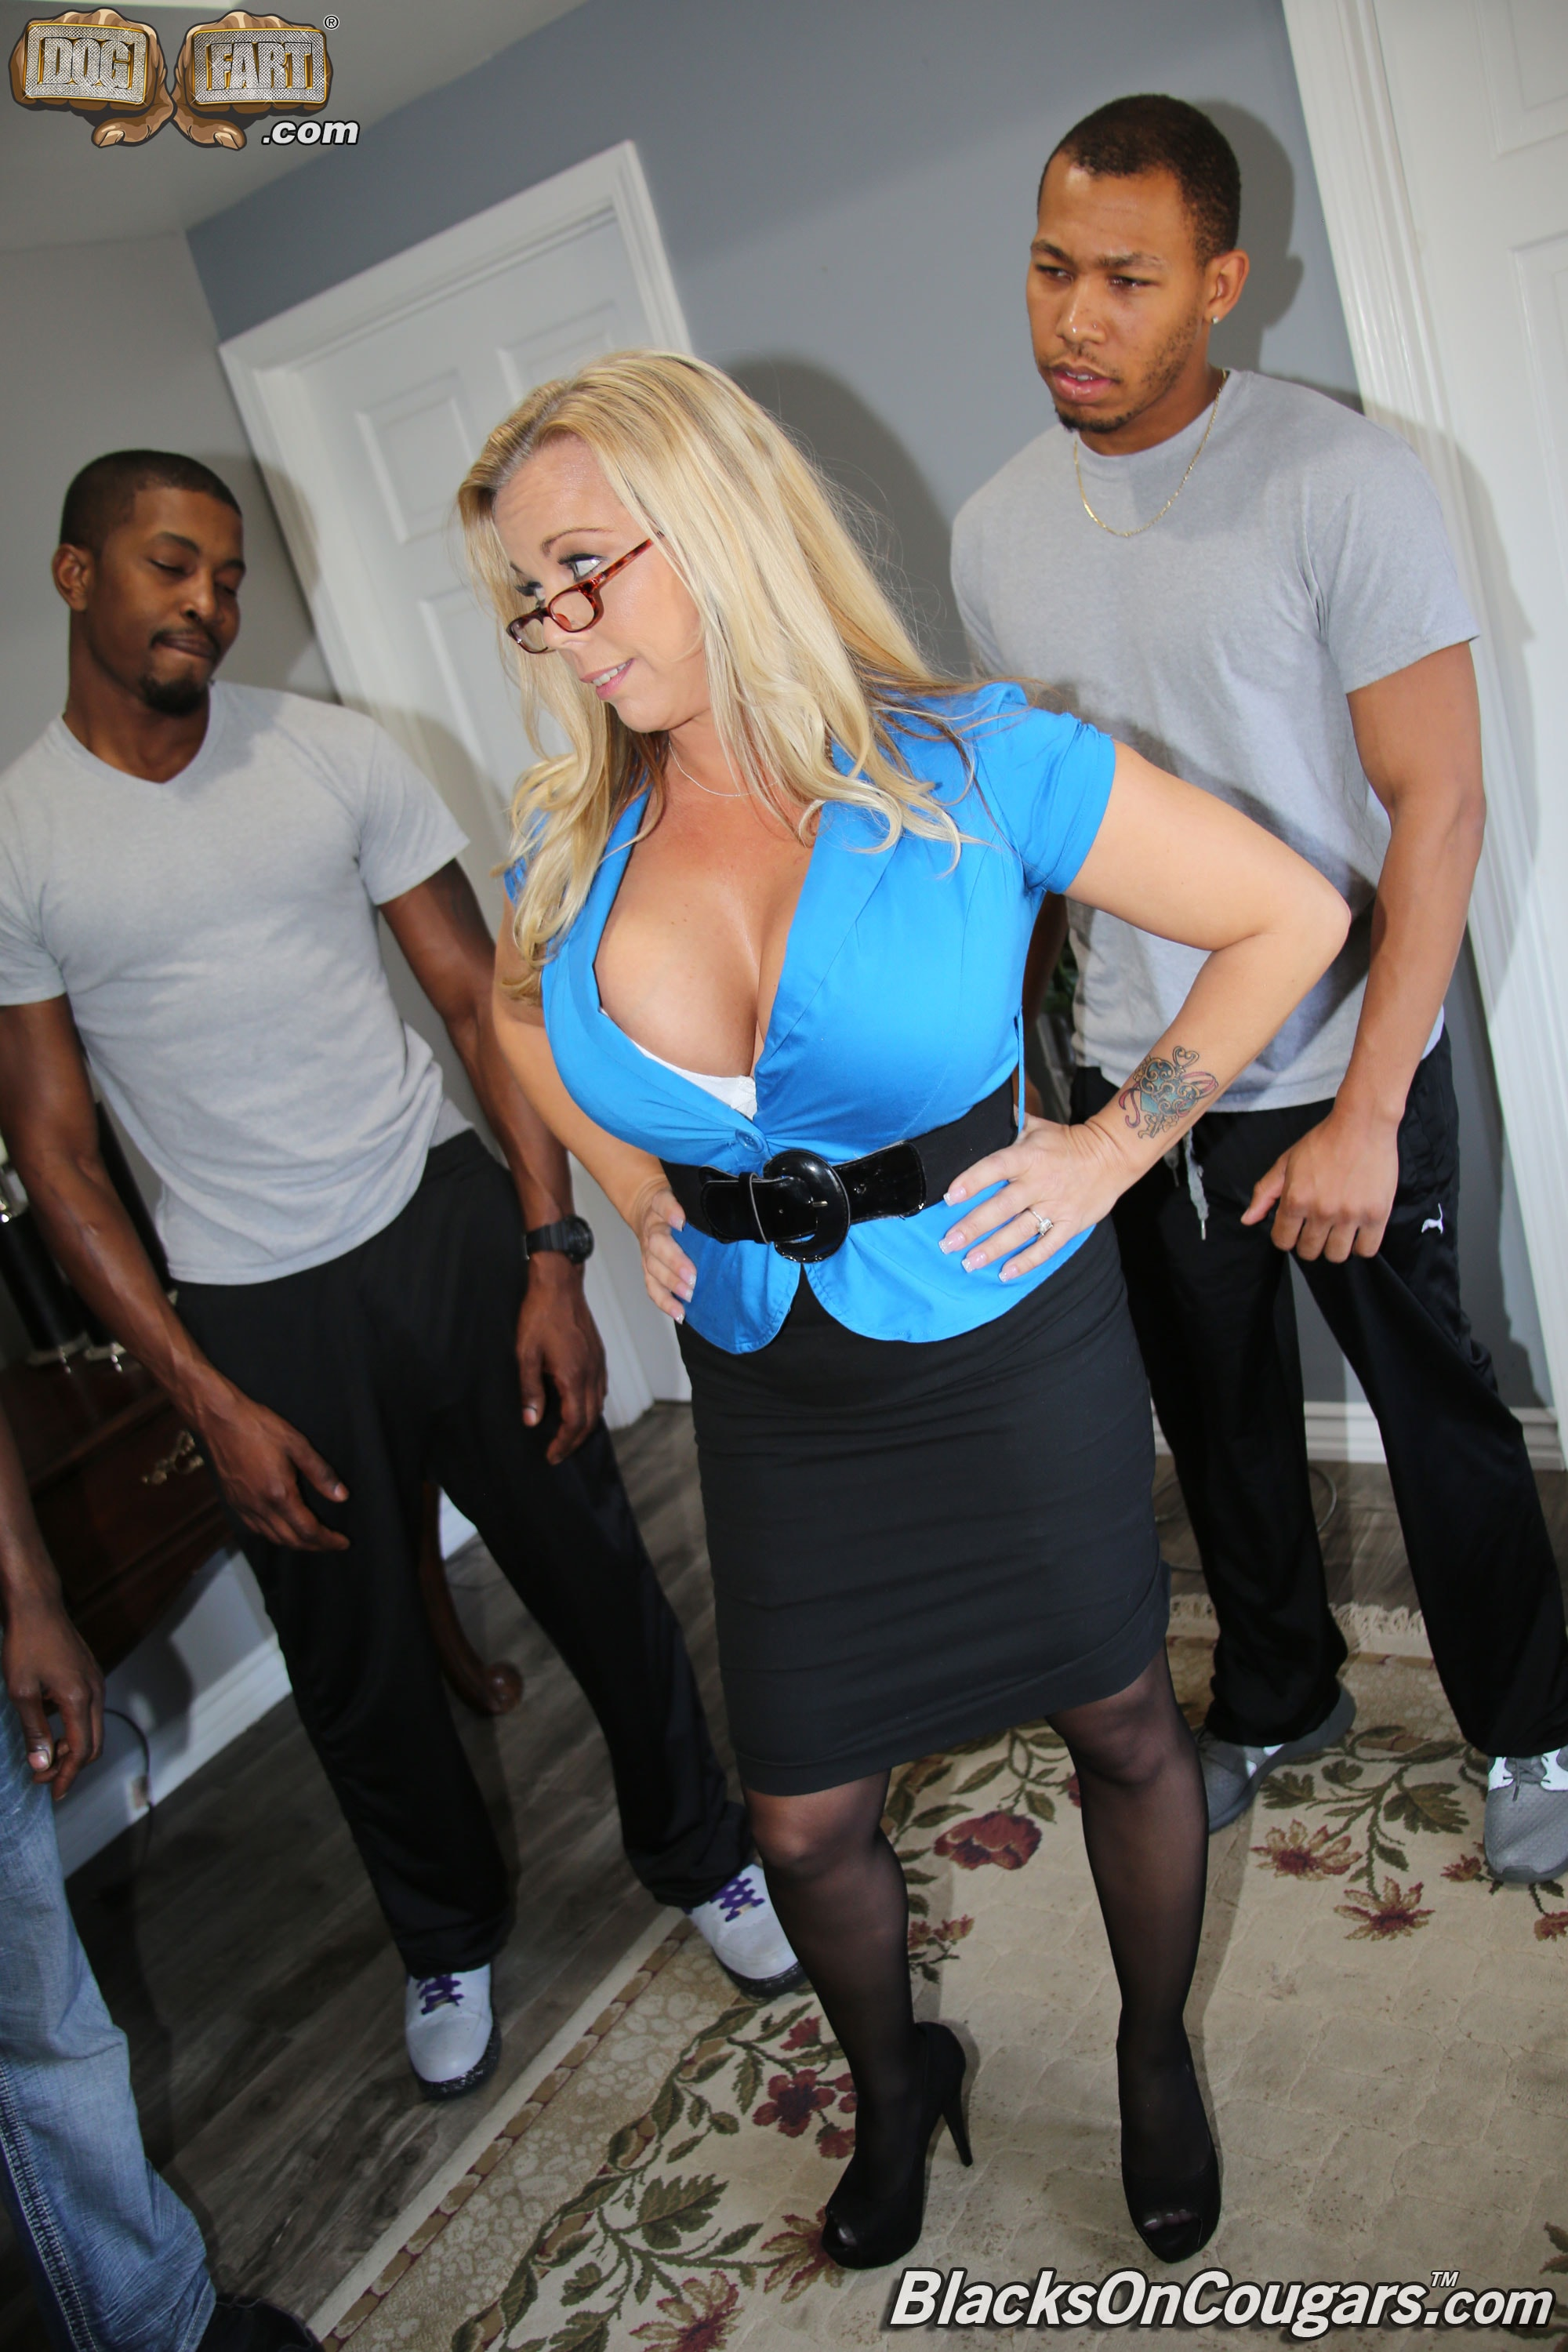 Dogfart 'Amber Lynn Bach - Blacks On Cougars' starring Amber Lynn Bach (photo 3)